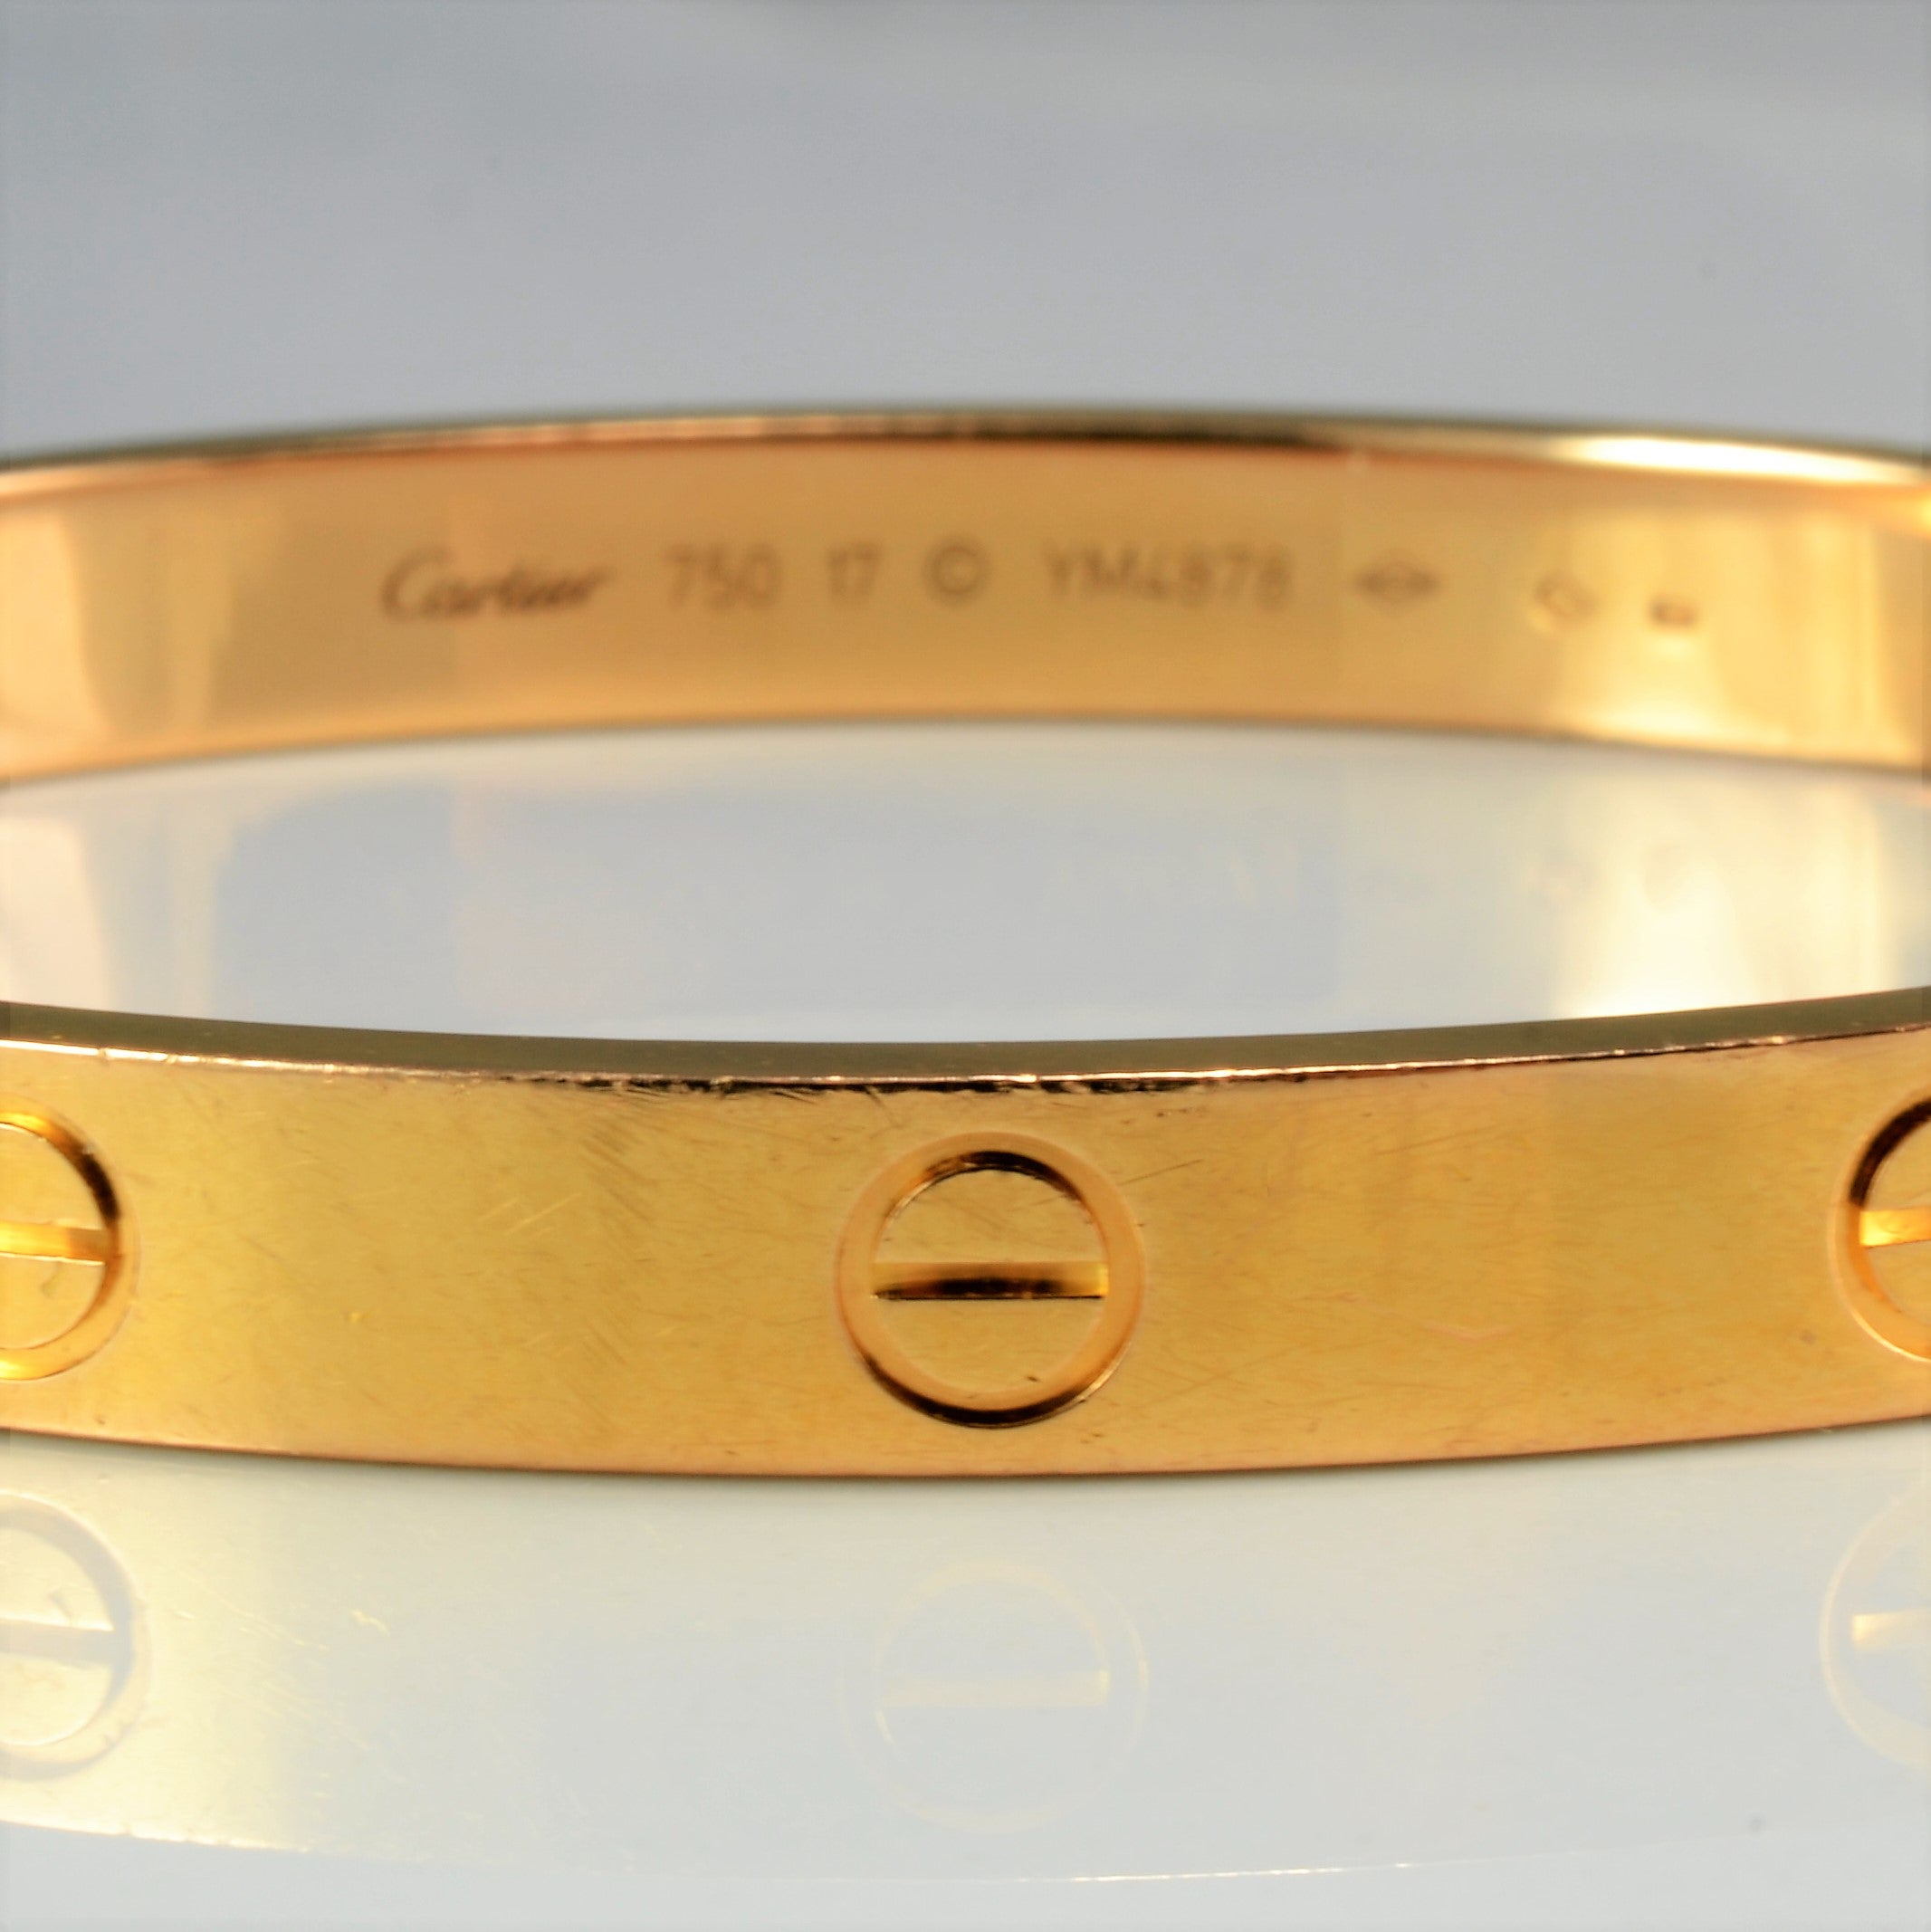 18K Gold Cartier Love bracelet with a Screwdriver | 7''|